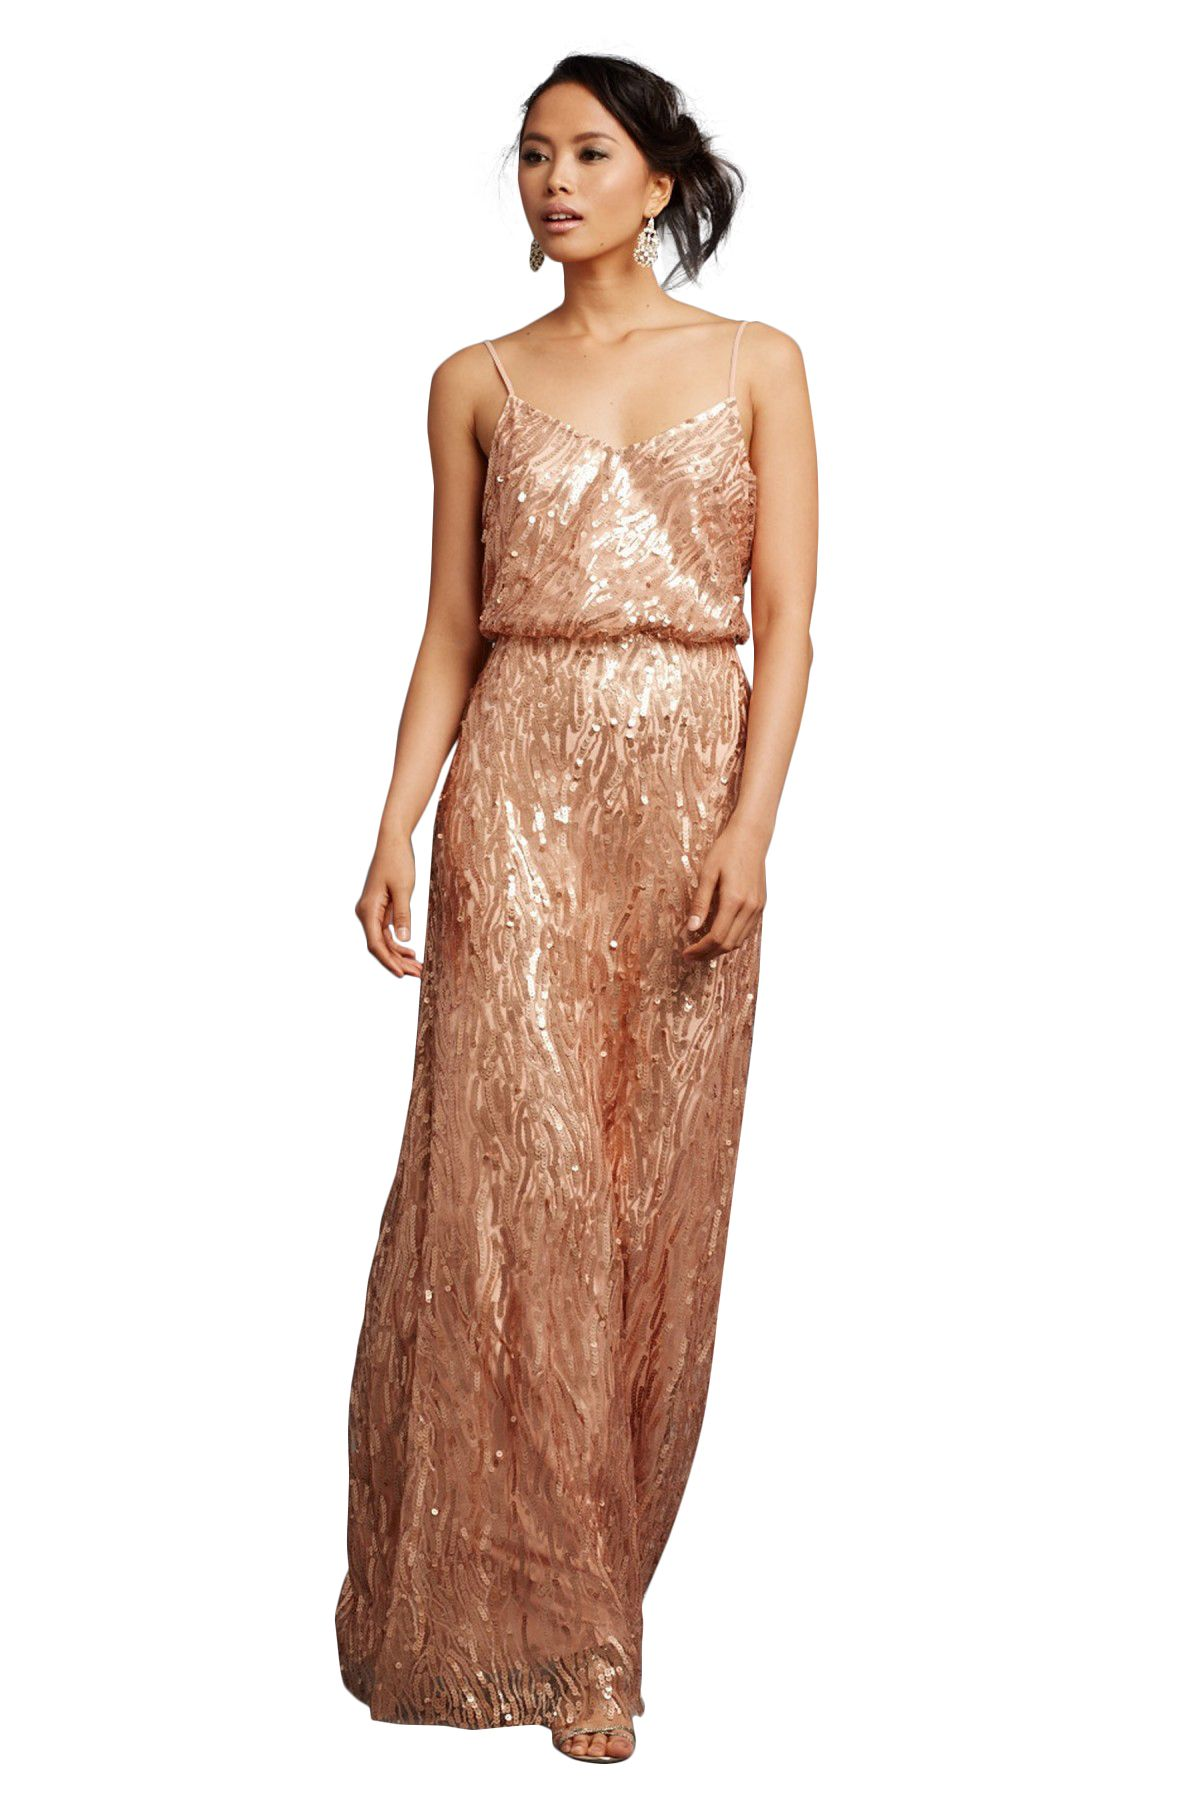 Shop donna morgan quick delivery style courtney in sequin at bridesmaid ombrellifo Images